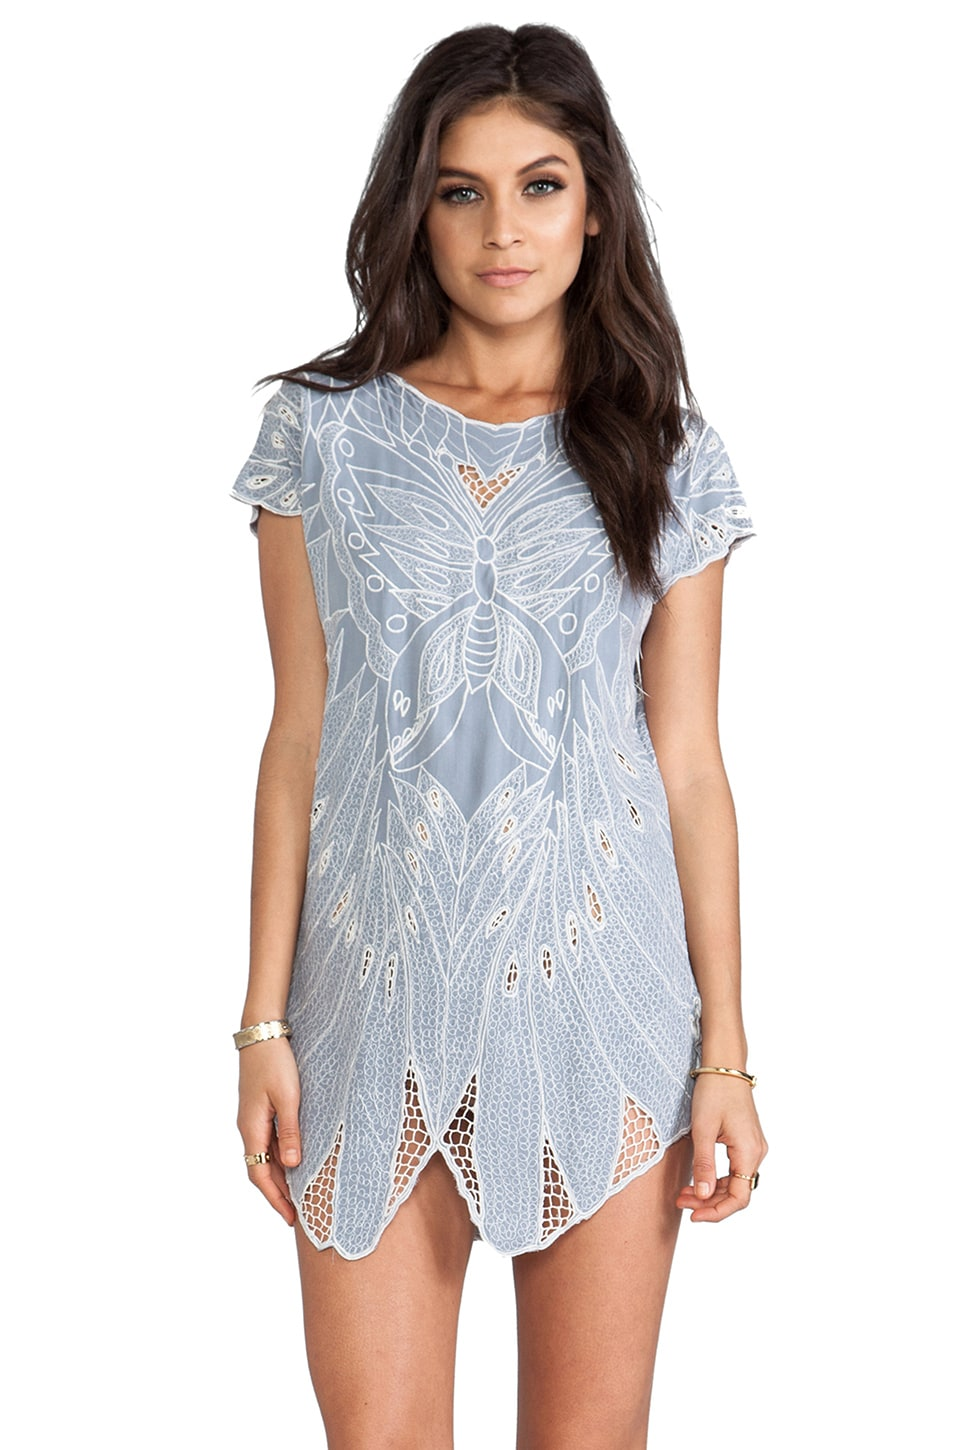 Jen's Pirate Booty Butterfly Mini Dress in Silver/Natural